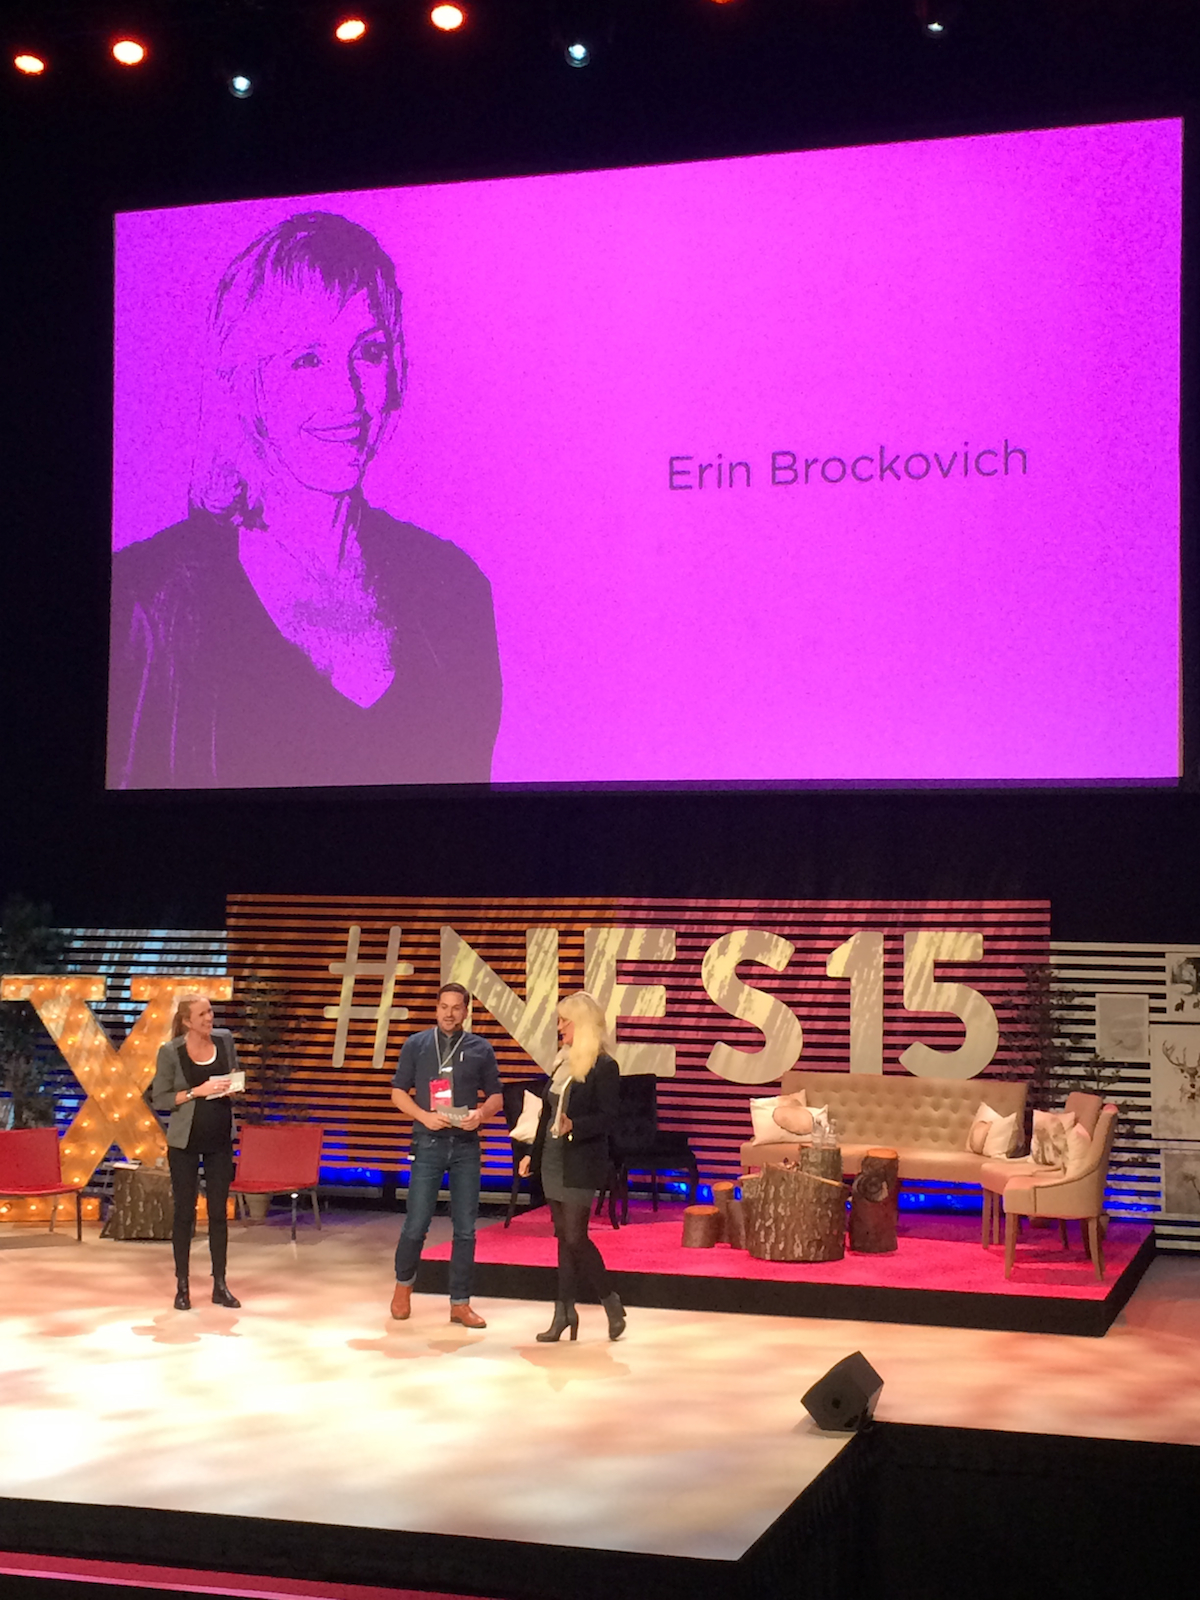 the real Erin Brockovich | skonhetssnack.se